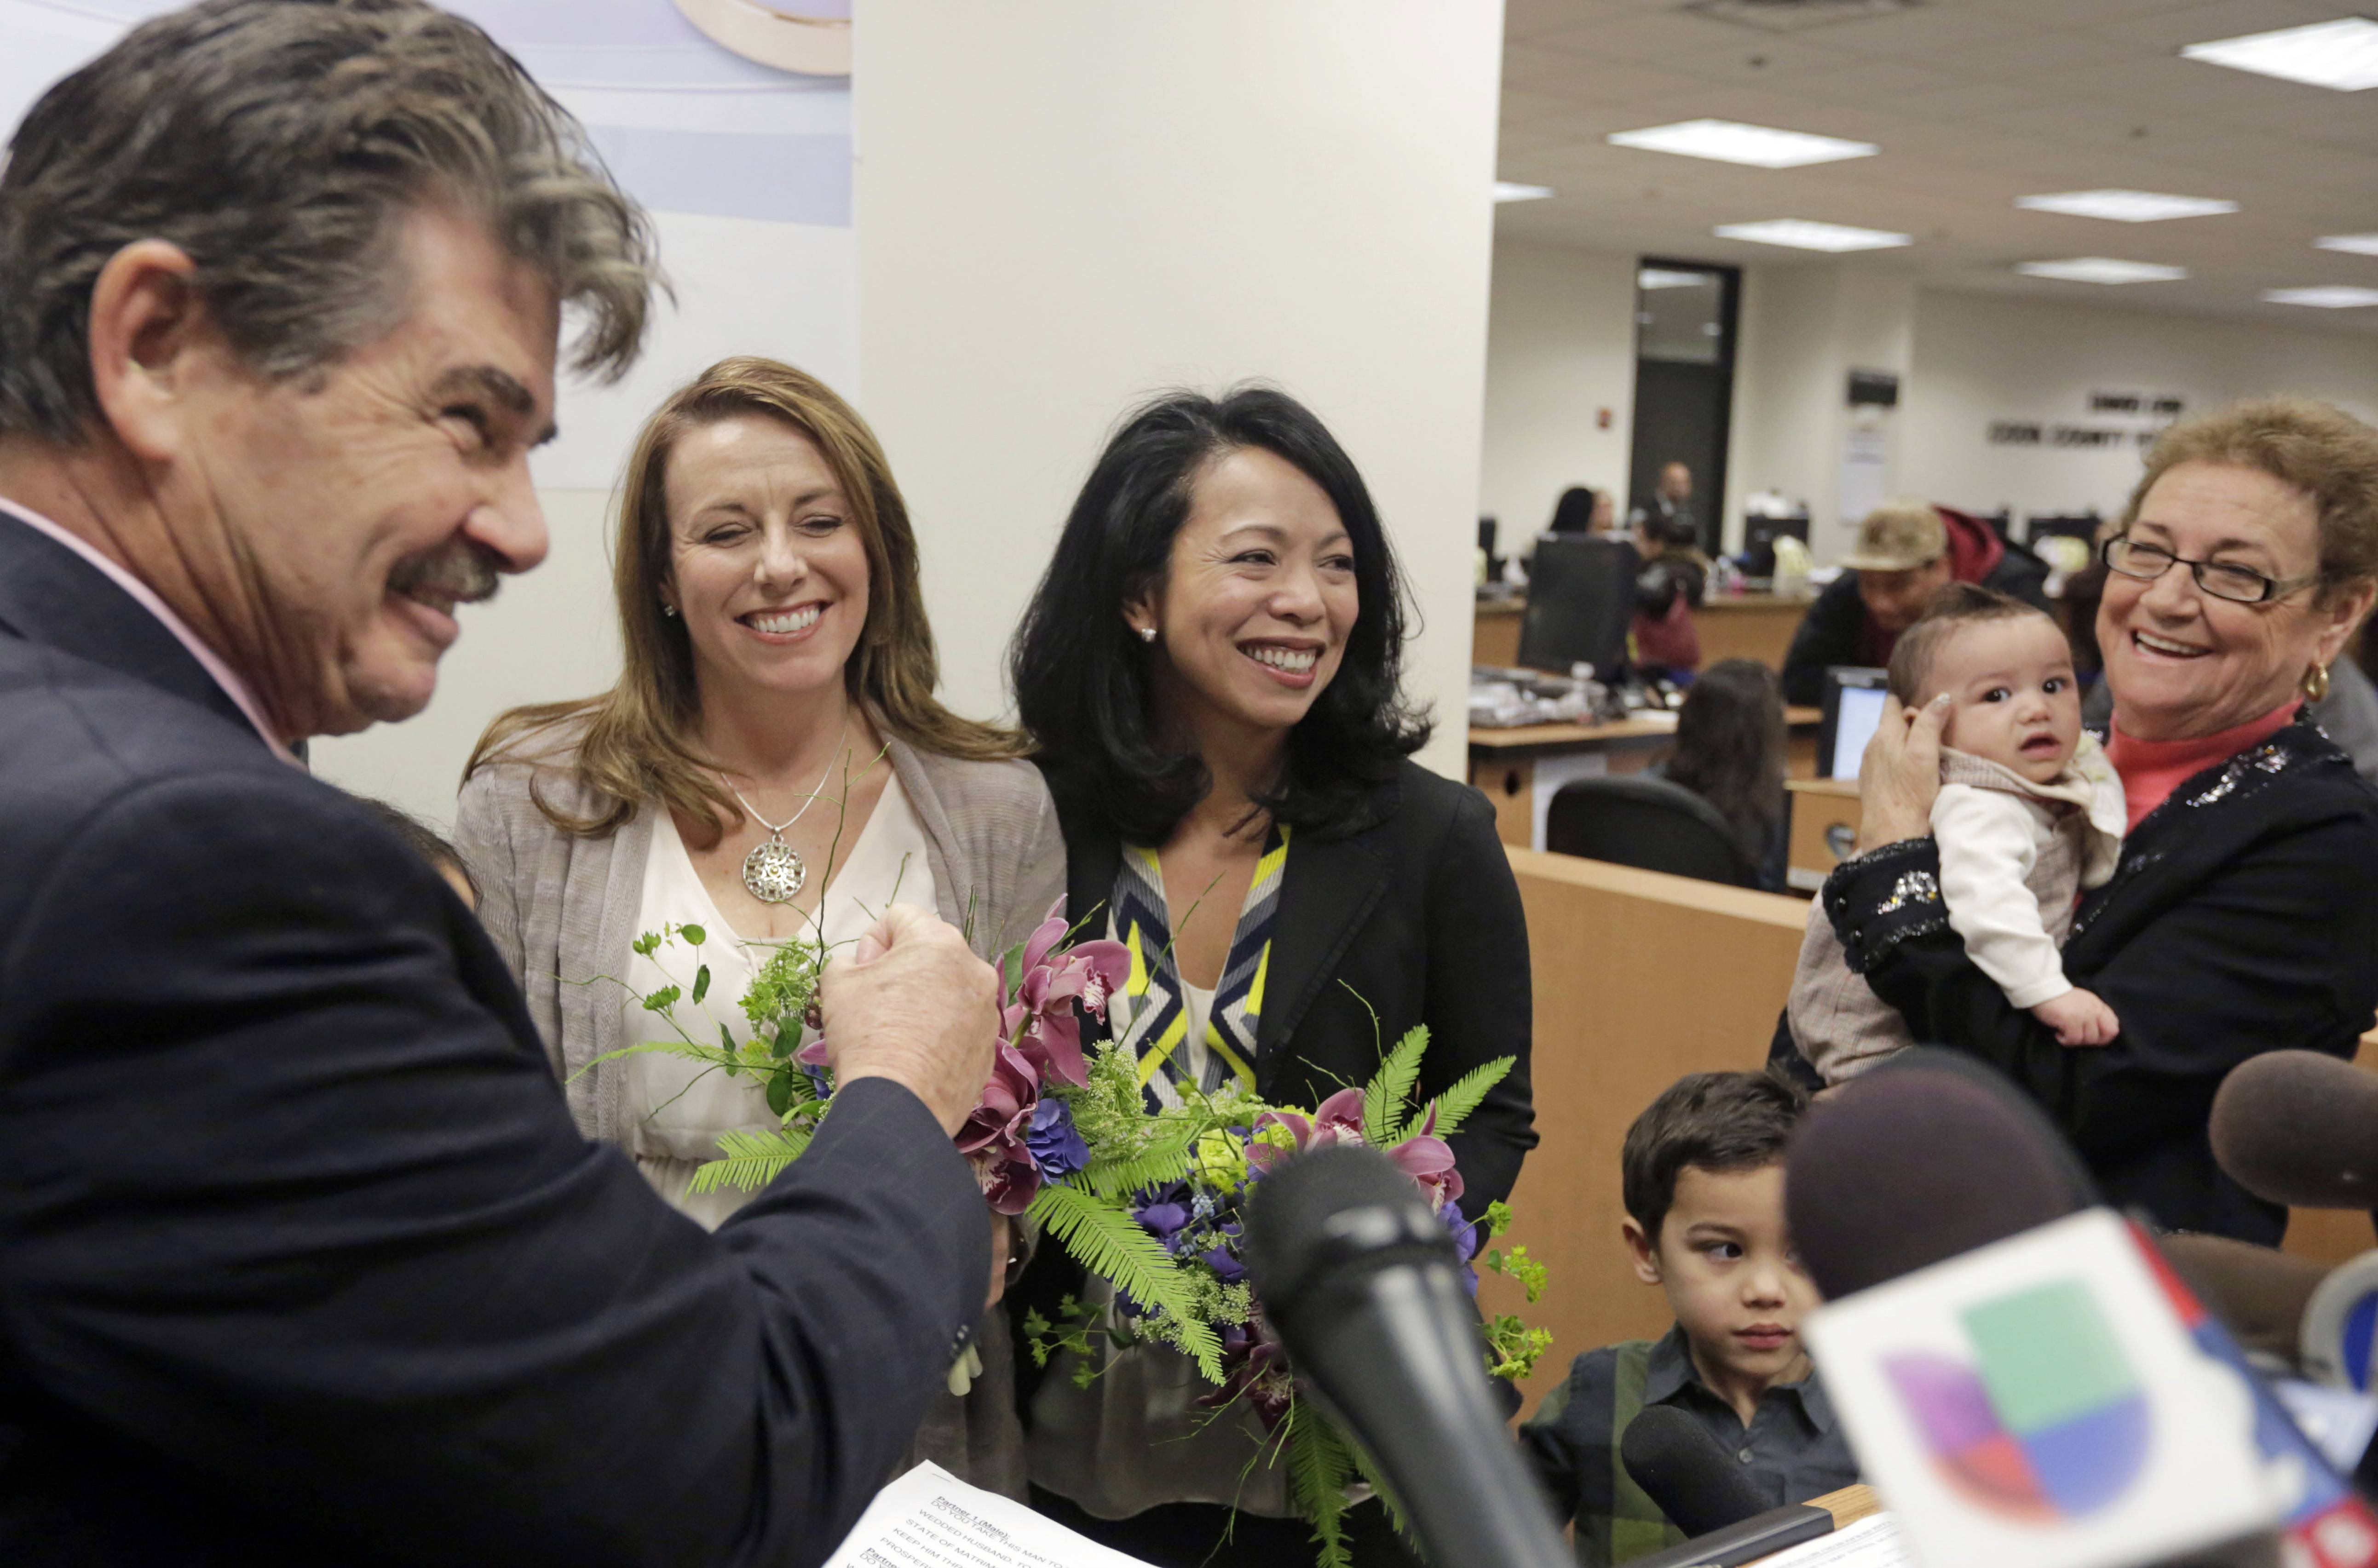 Cook County Clerk David Orr, left, performs a marriage ceremony for Theresa Volpe, second from left, and Mercedes Santos on Friday in Chicago. Same-sex couples in Illinois' Cook County began receiving marriage licenses immediately after a federal judge's ruling Friday that some attorneys could give county clerks statewide justification to also issue the documents right away.